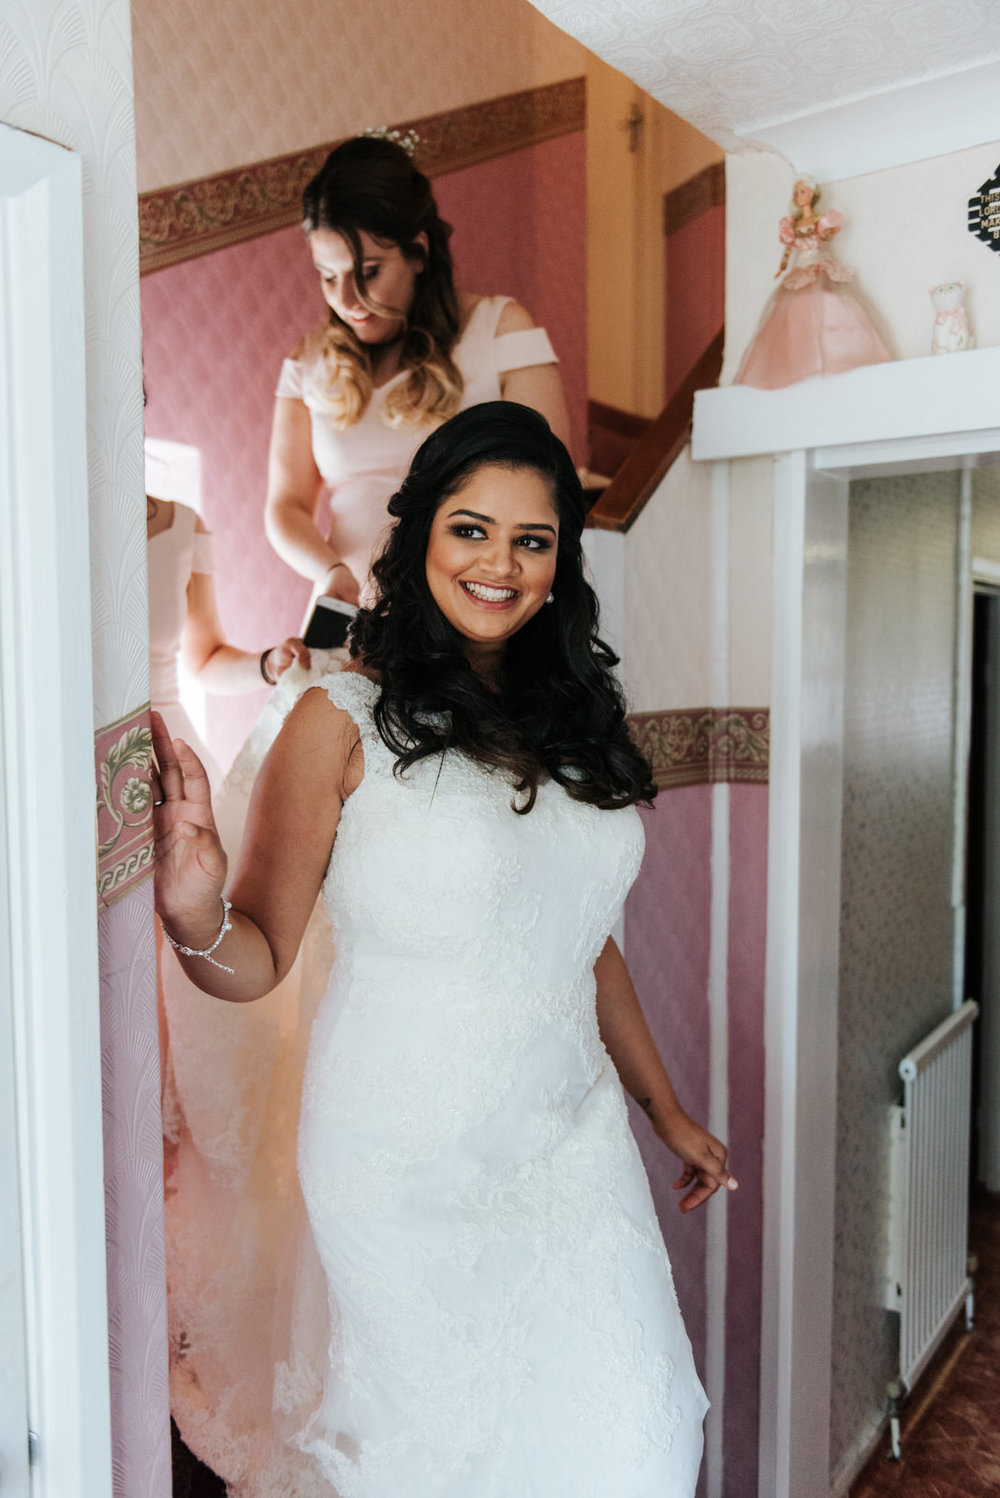 Bride walks down the stairs in her wedding dress in parent's hom